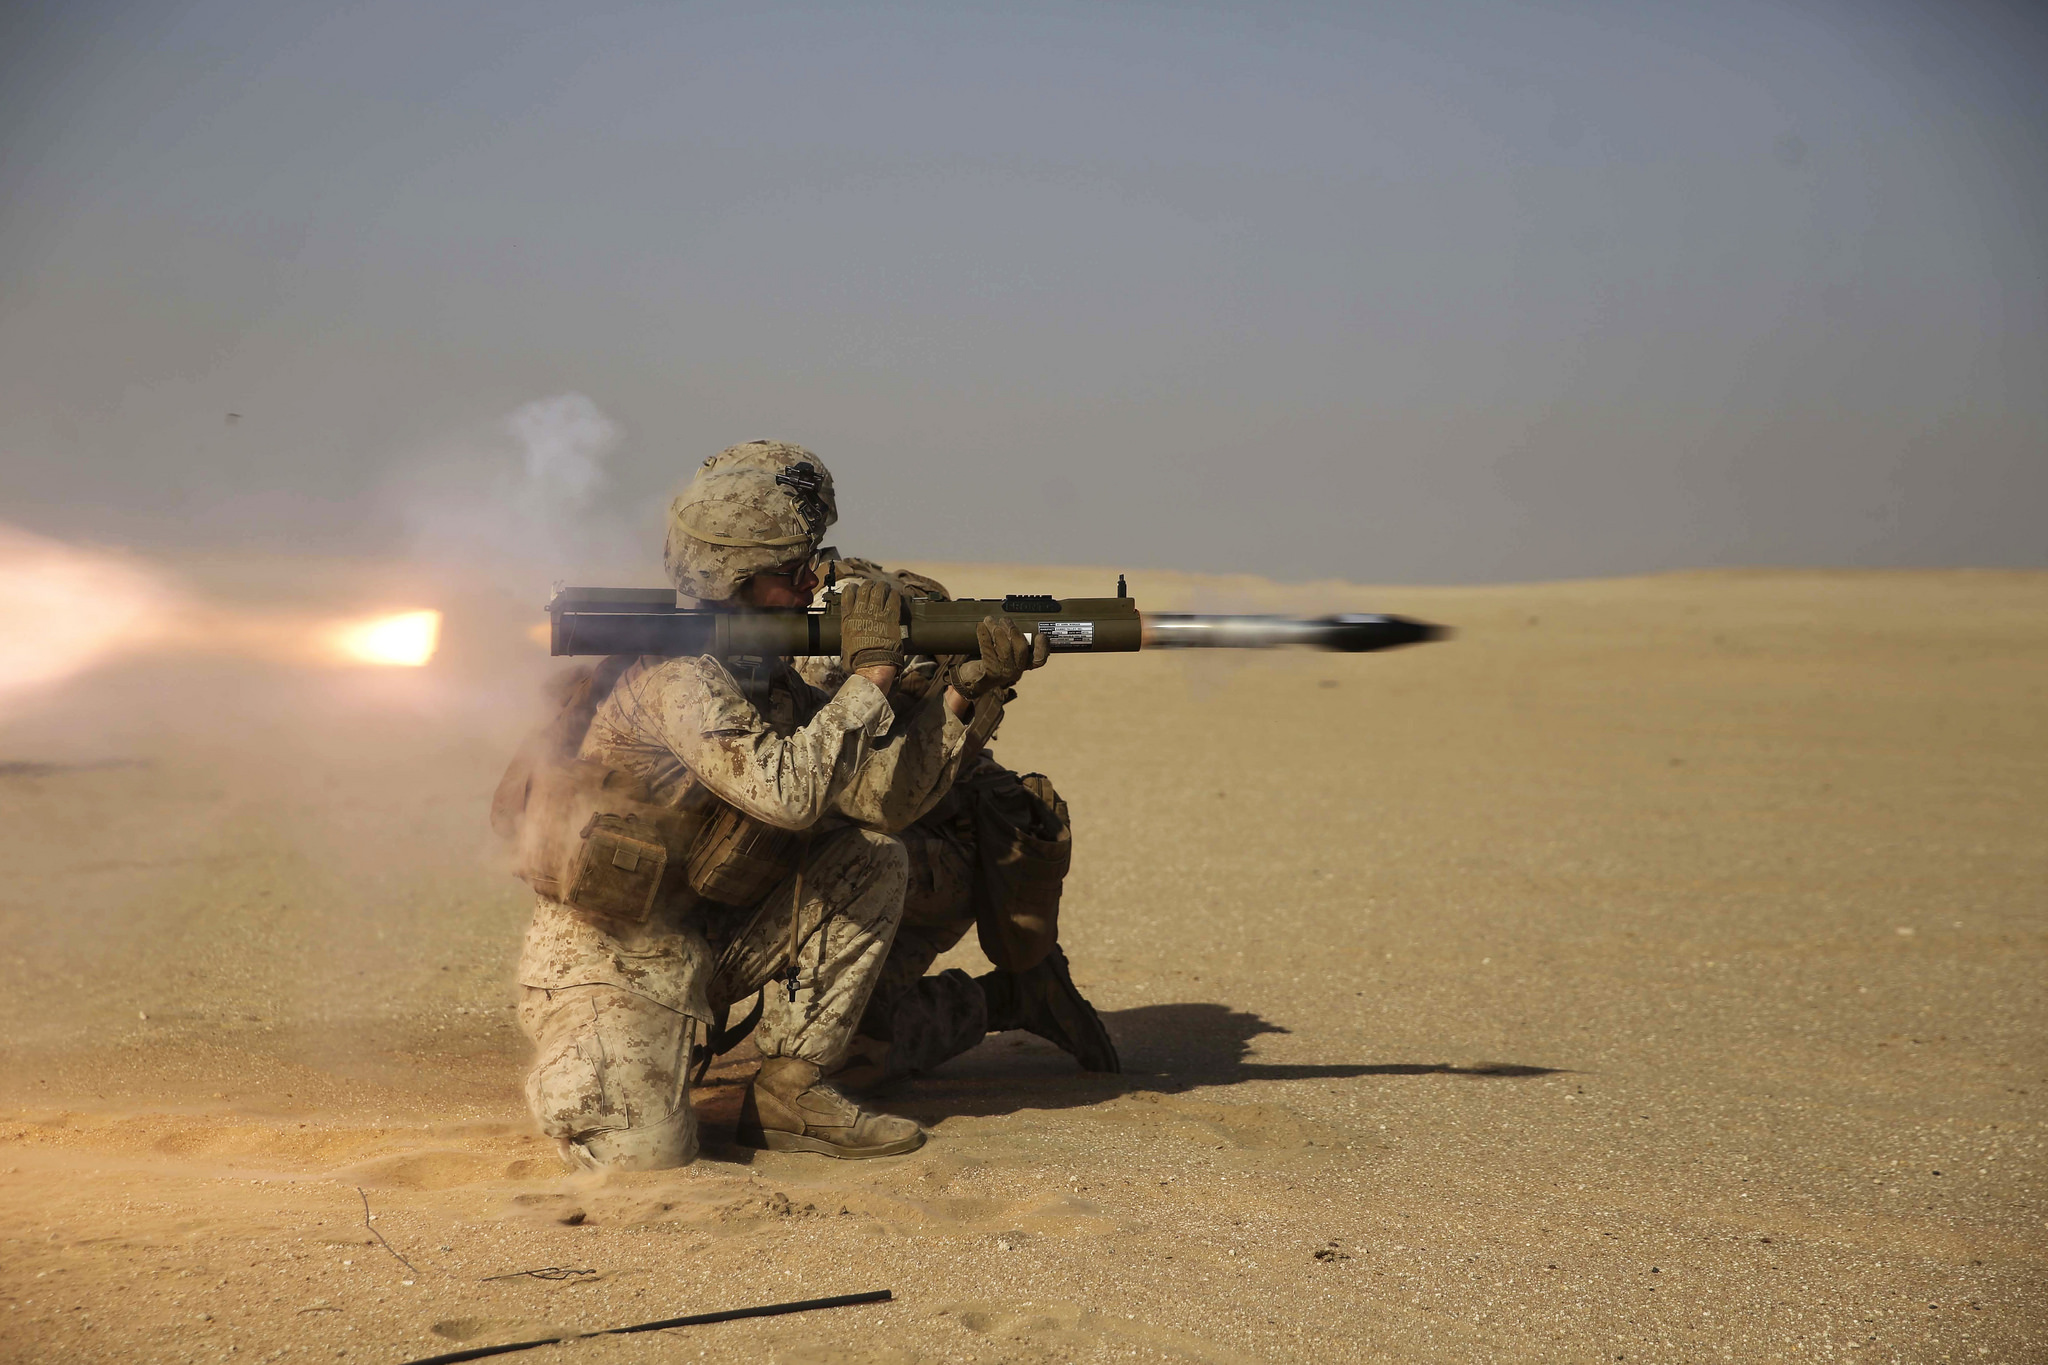 A Marine with Company A, 1st Battalion, 5th Marine Regiment the 15th Marine Expeditionary Unit's Ground Combat Element, fires an M72A7 rocket launcher Oct. 23, 2017, during a familiarization course at an undisclosed location. (Cpl. Timothy Valero/Marine Corps)